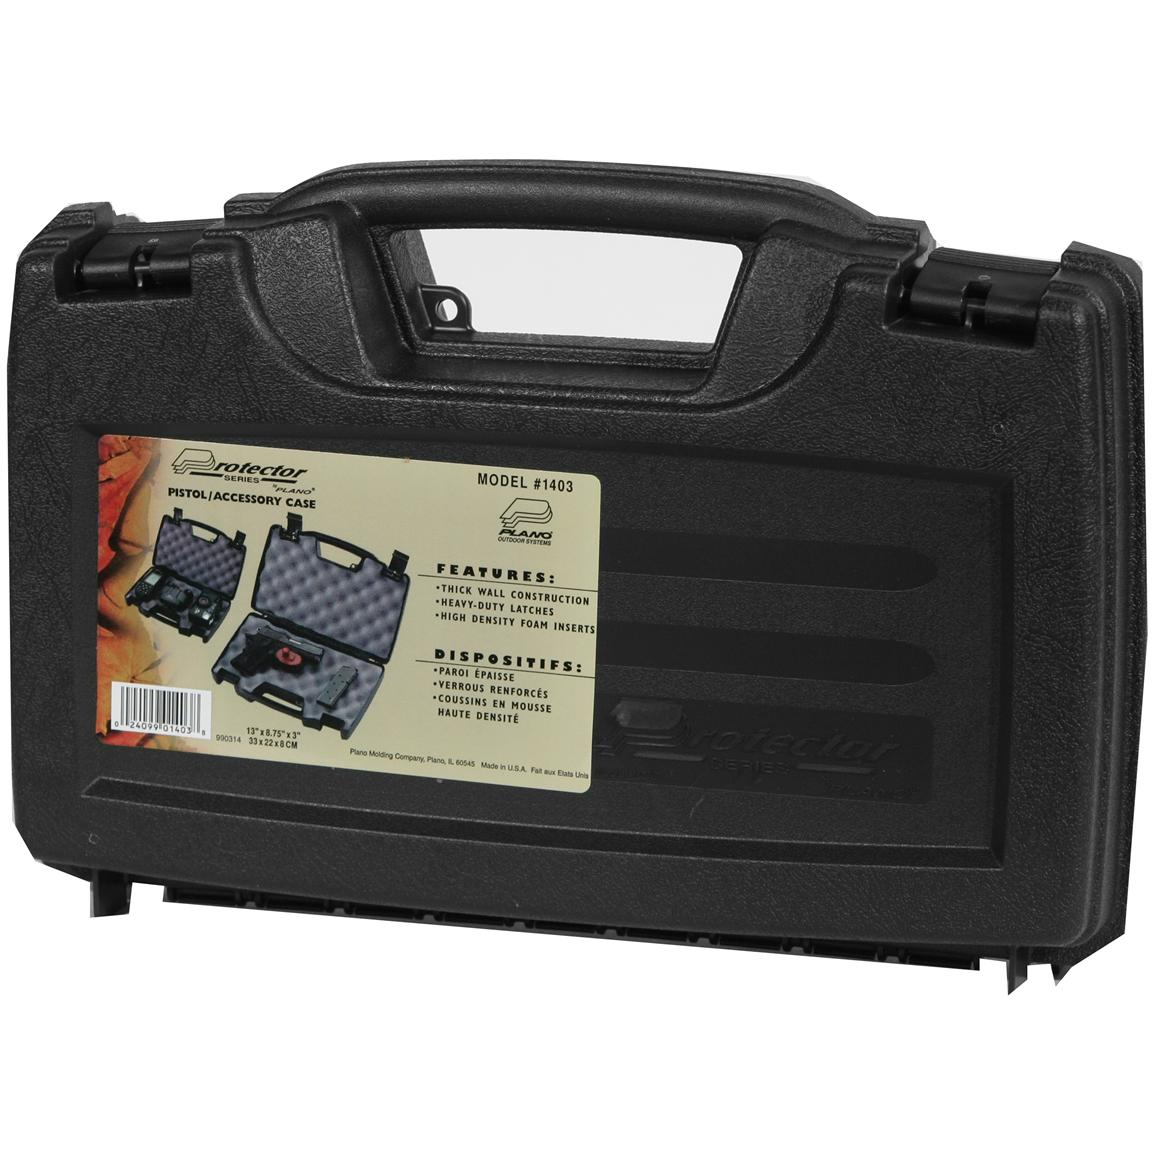 Swiss Arms Protector Hard Side Gun Case for Pistols